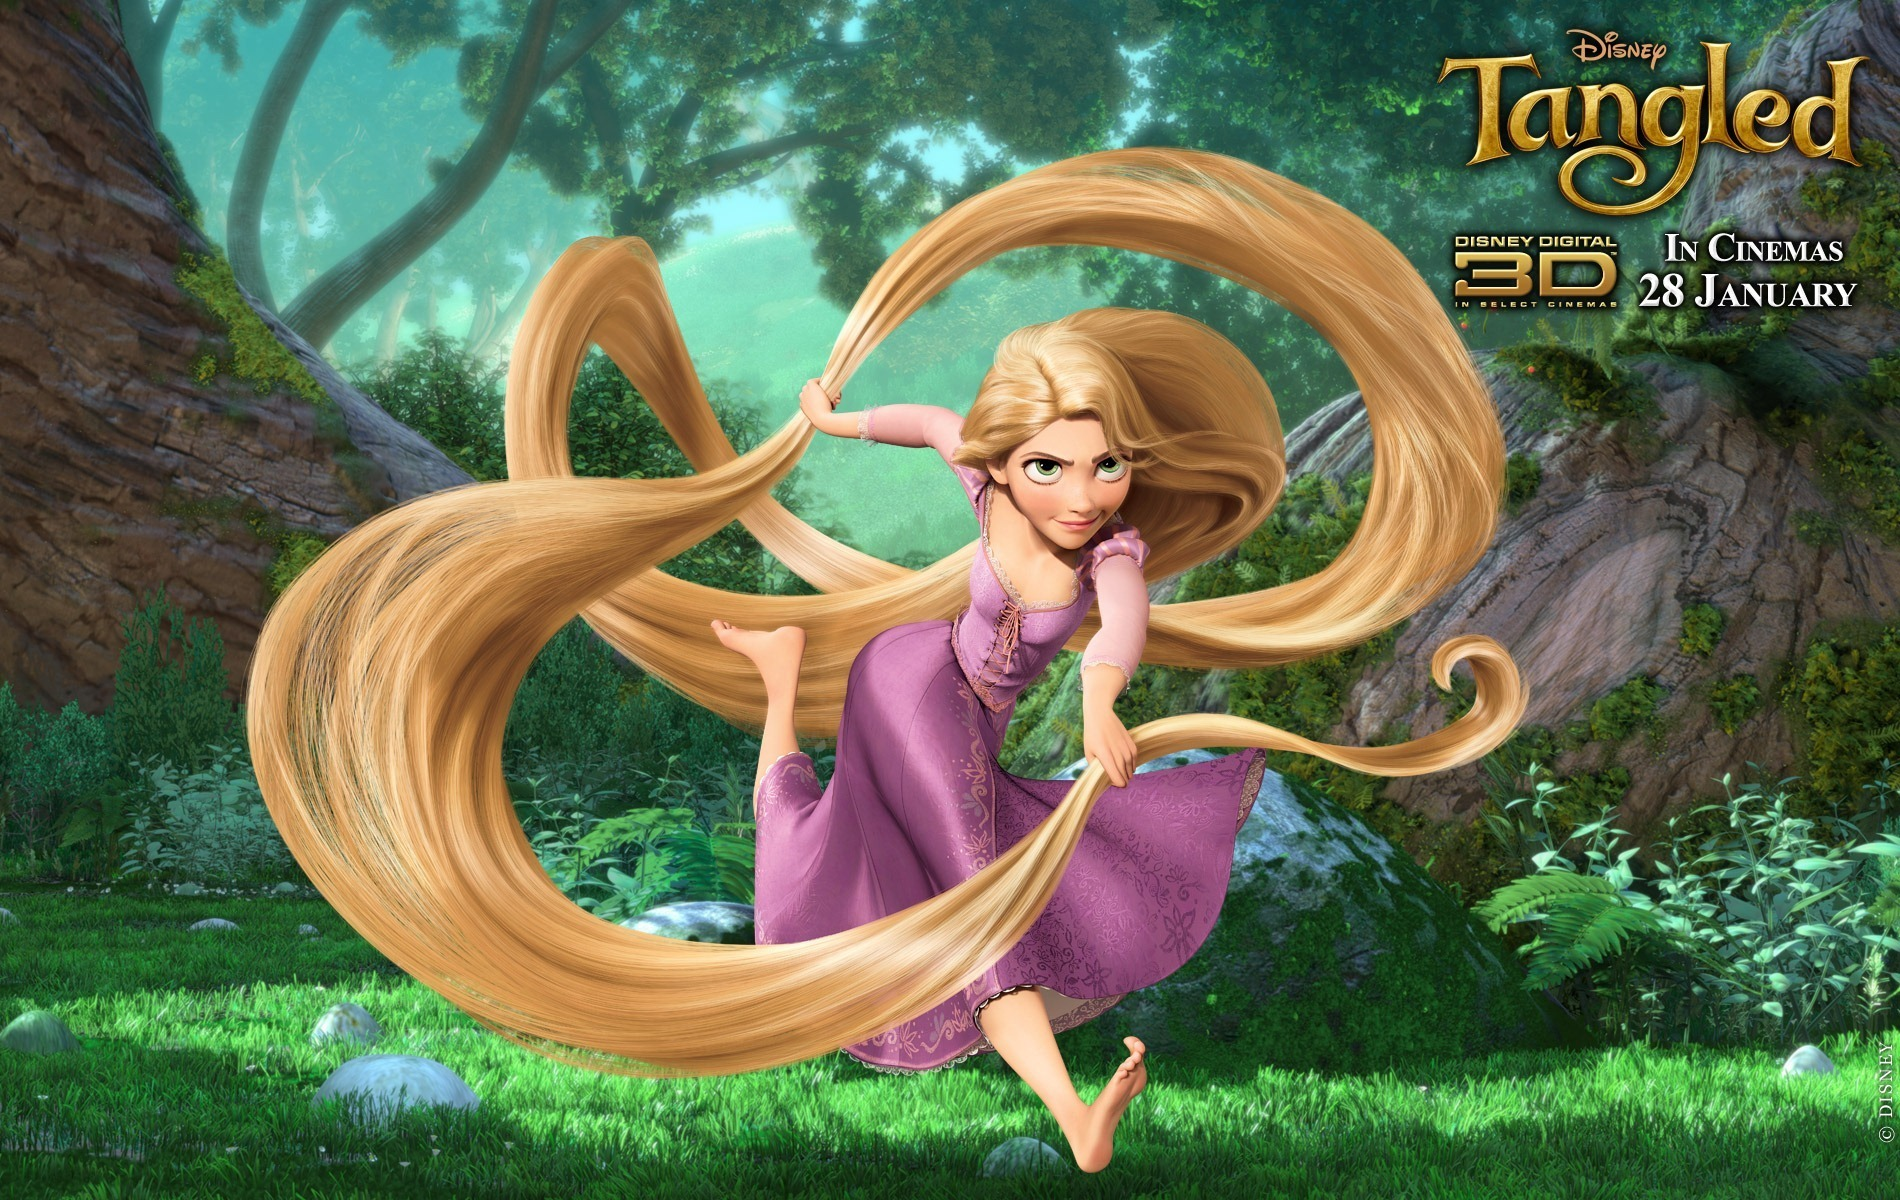 who plays rapunzel in tangled